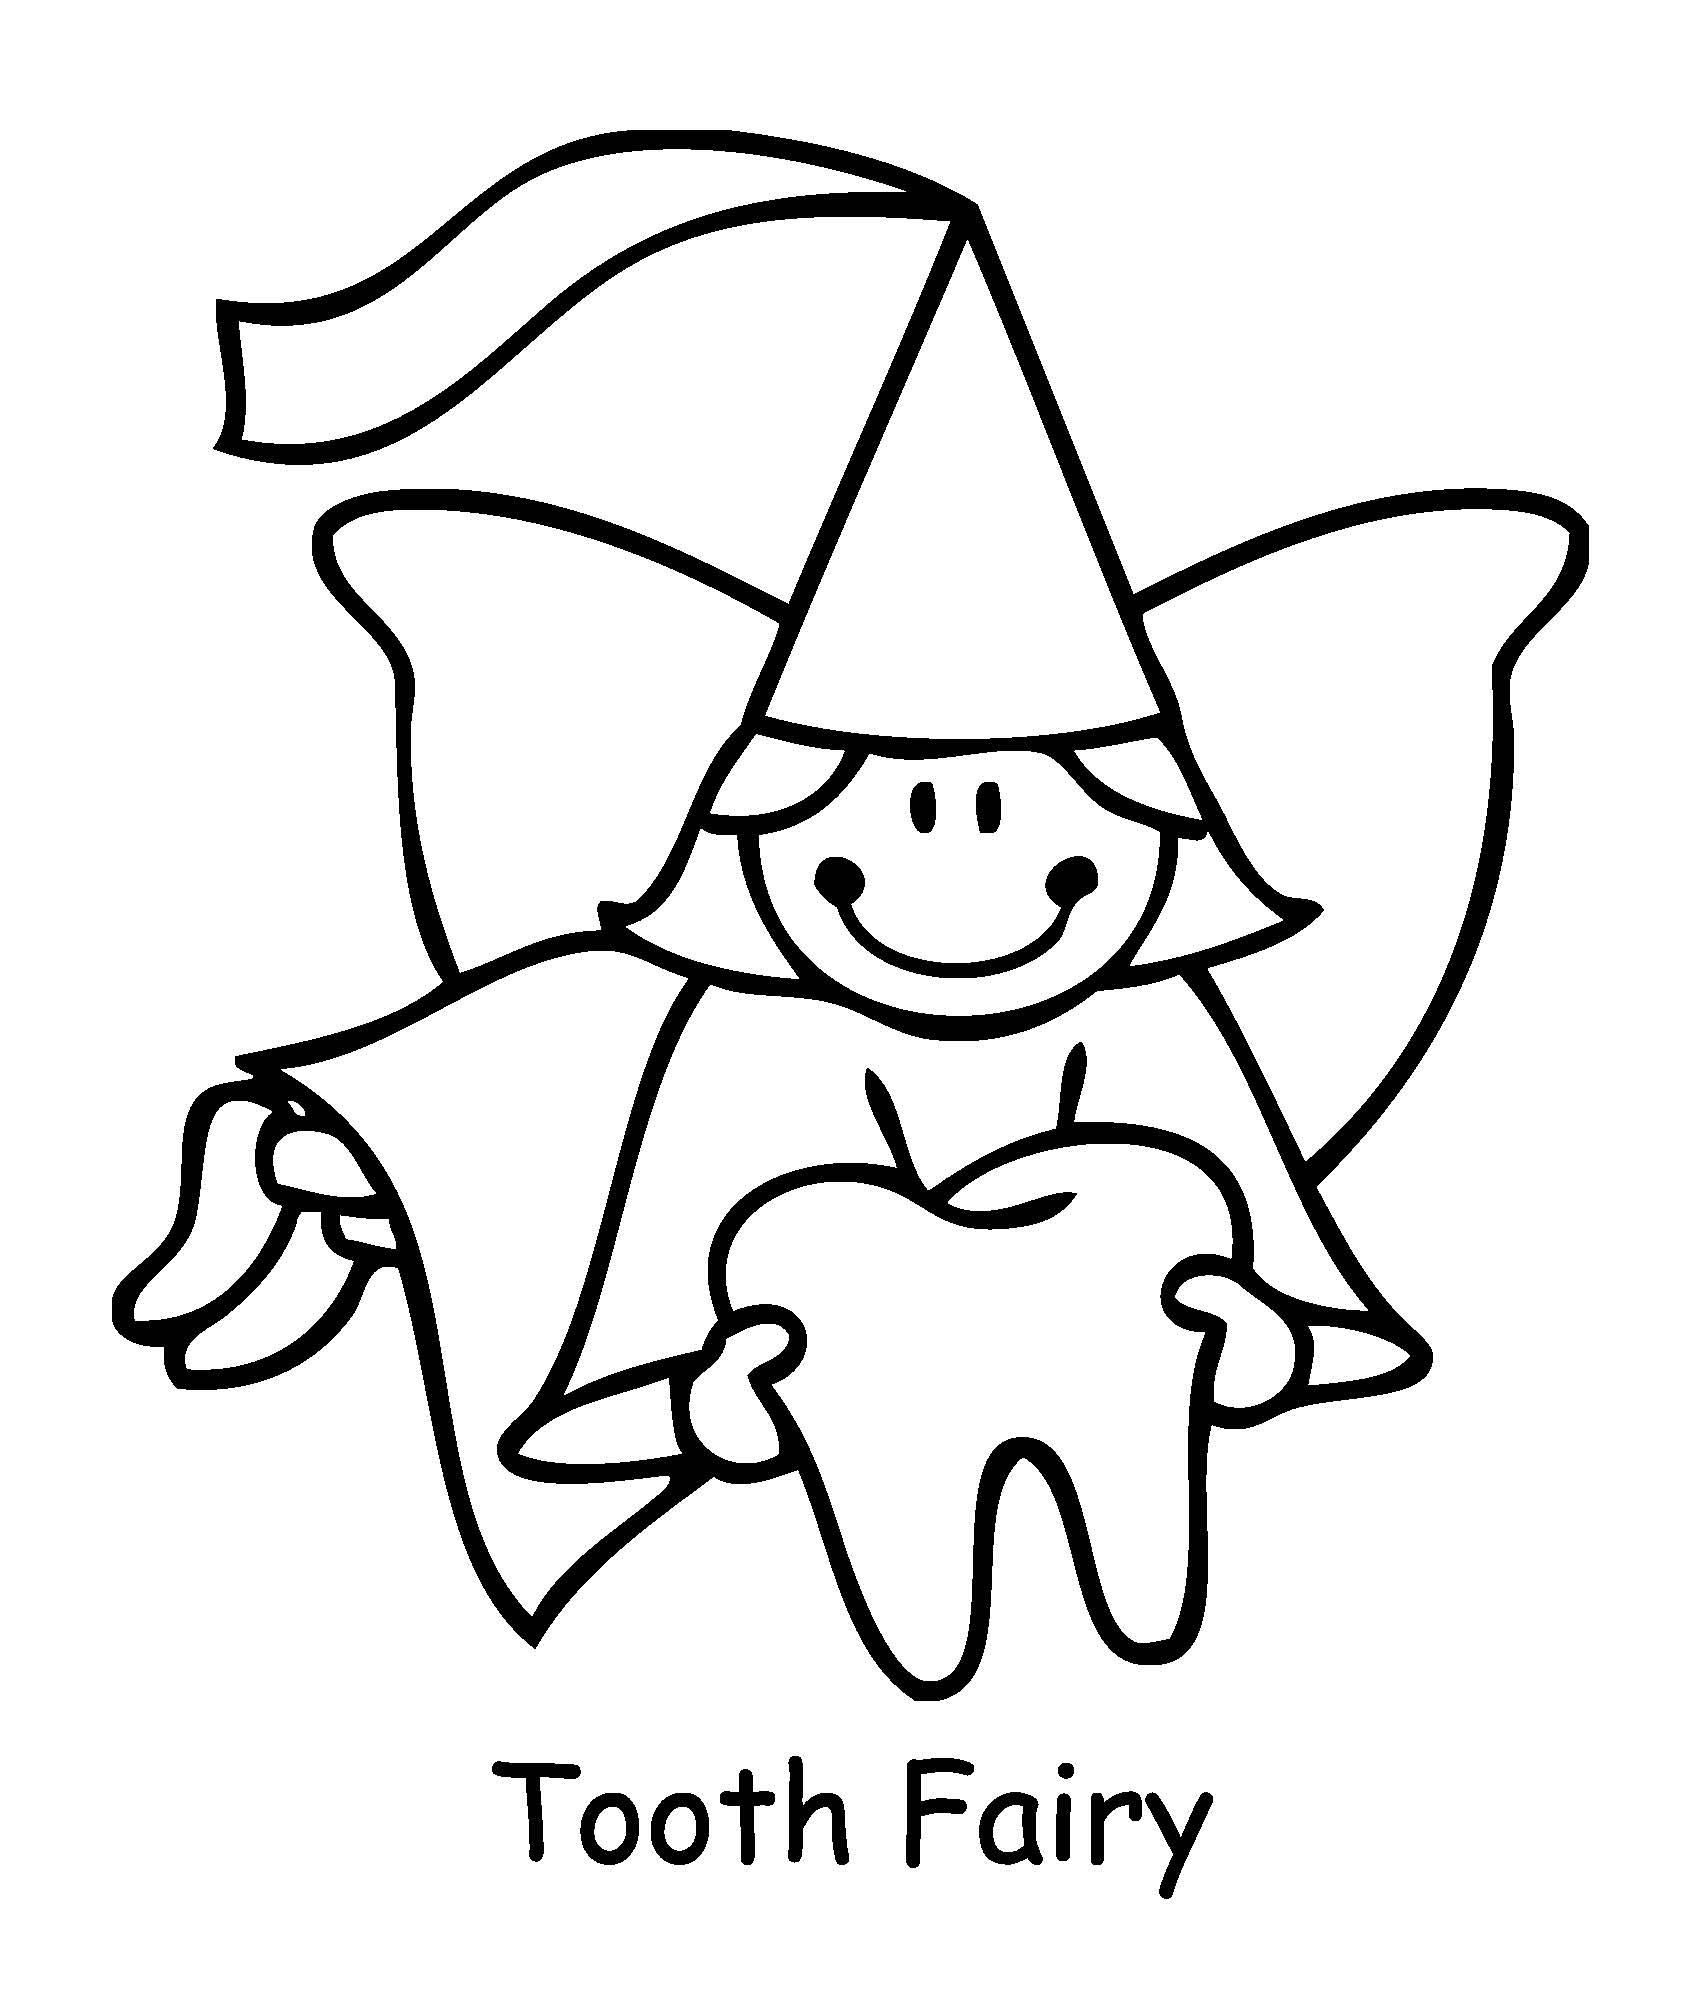 Coloring Pages For Tooth Fairy